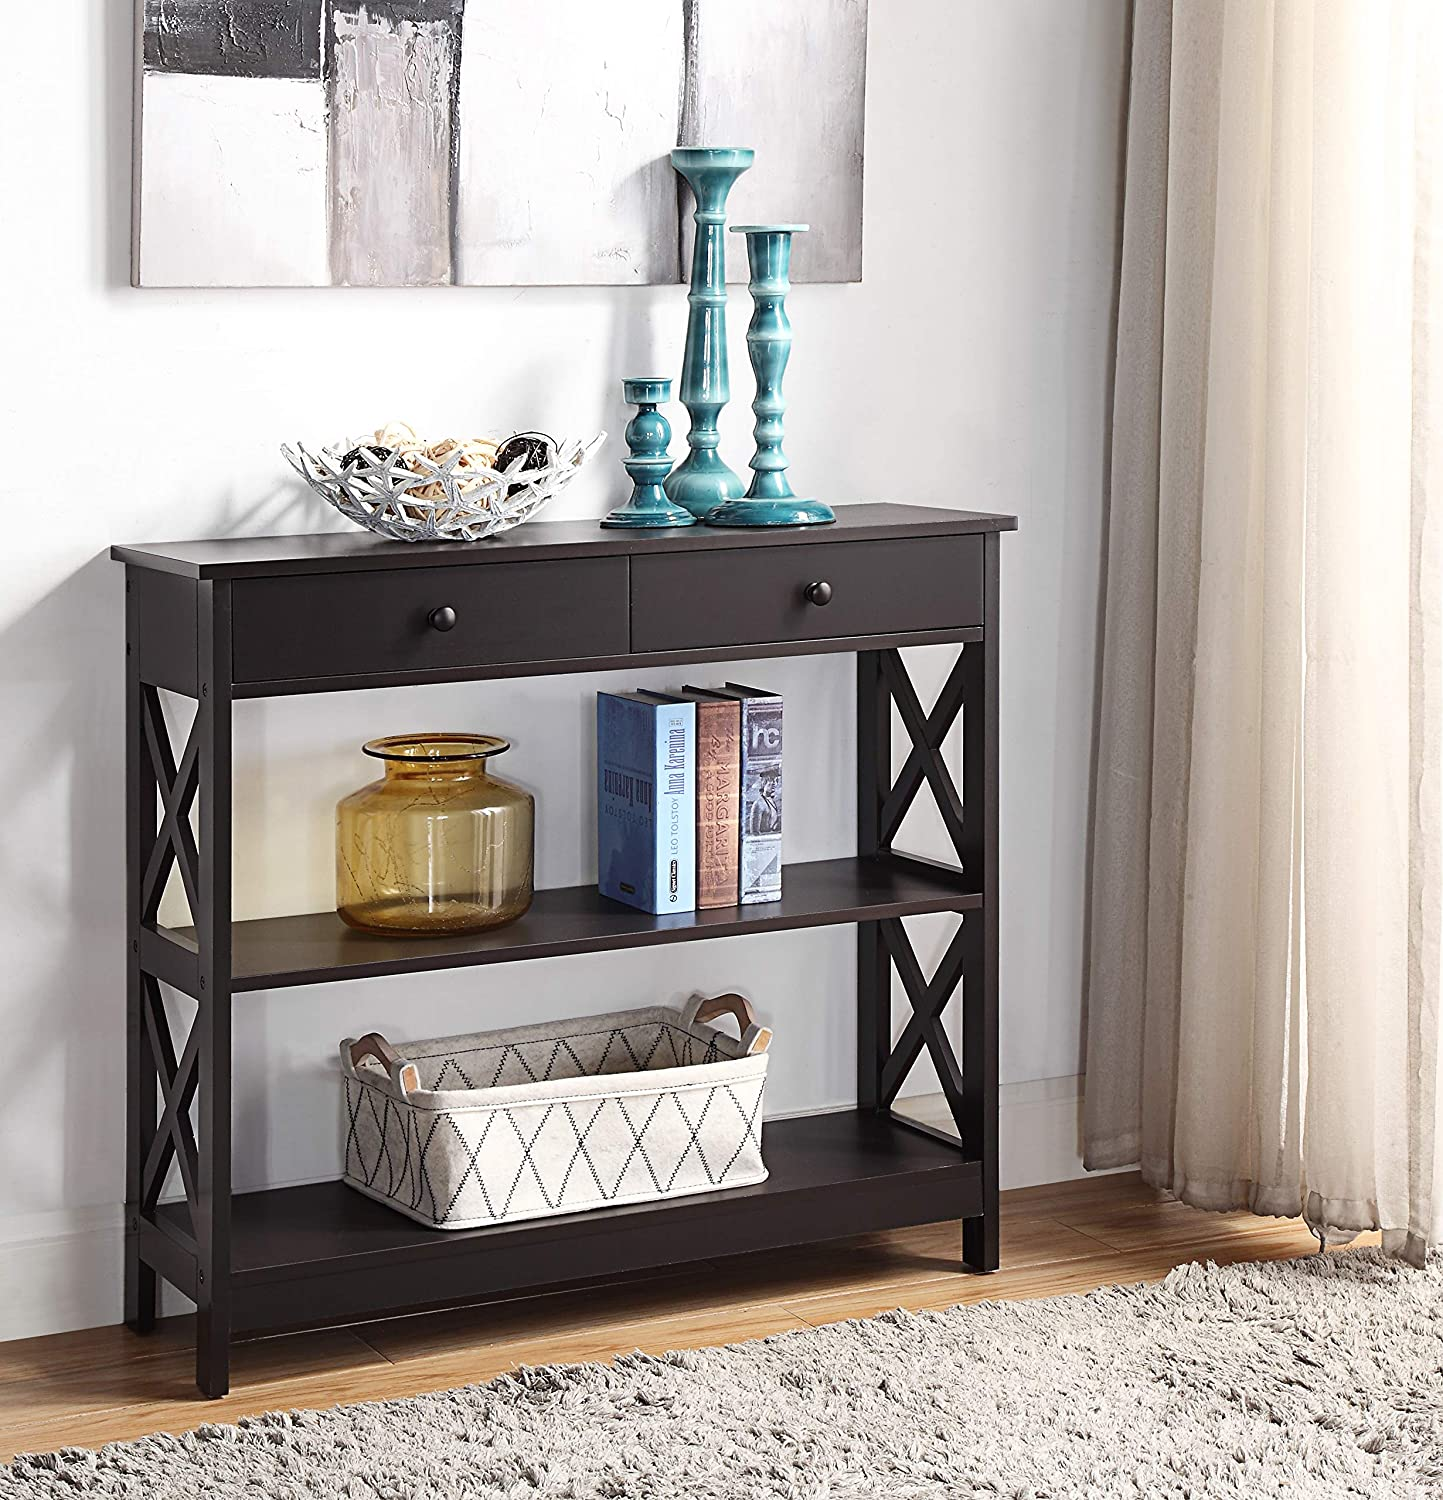 Espresso Finish 3-Tier Console Sofa Entry Table with Shelf/Two Drawers: Kitchen & Dining